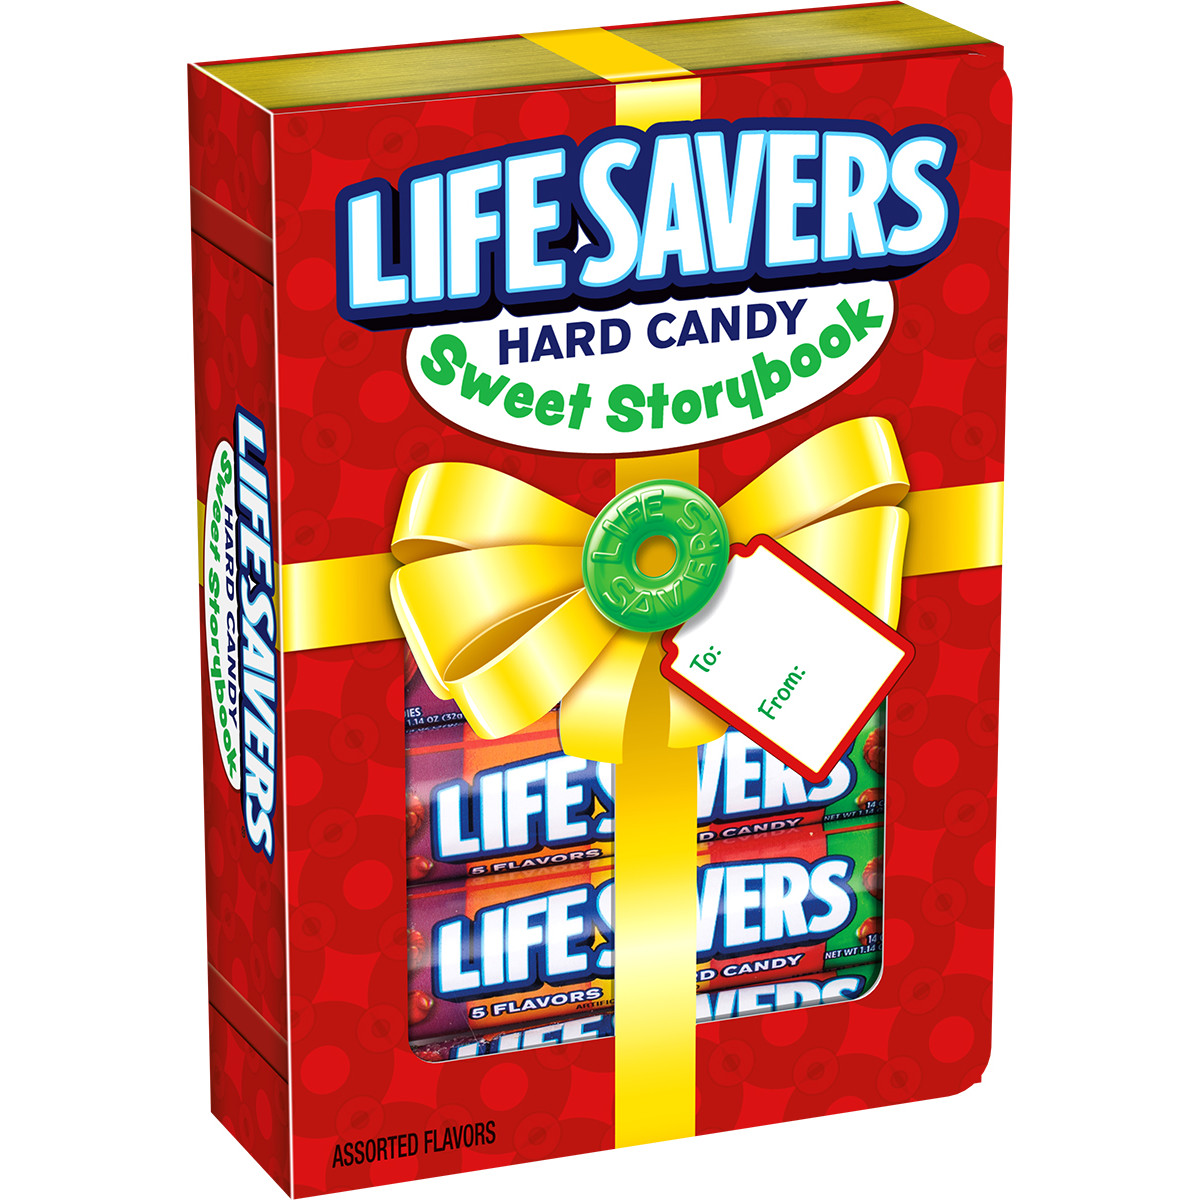 Life Savers 5 Flavors Hard Candy Sweet Storybook, 6.8 ounce